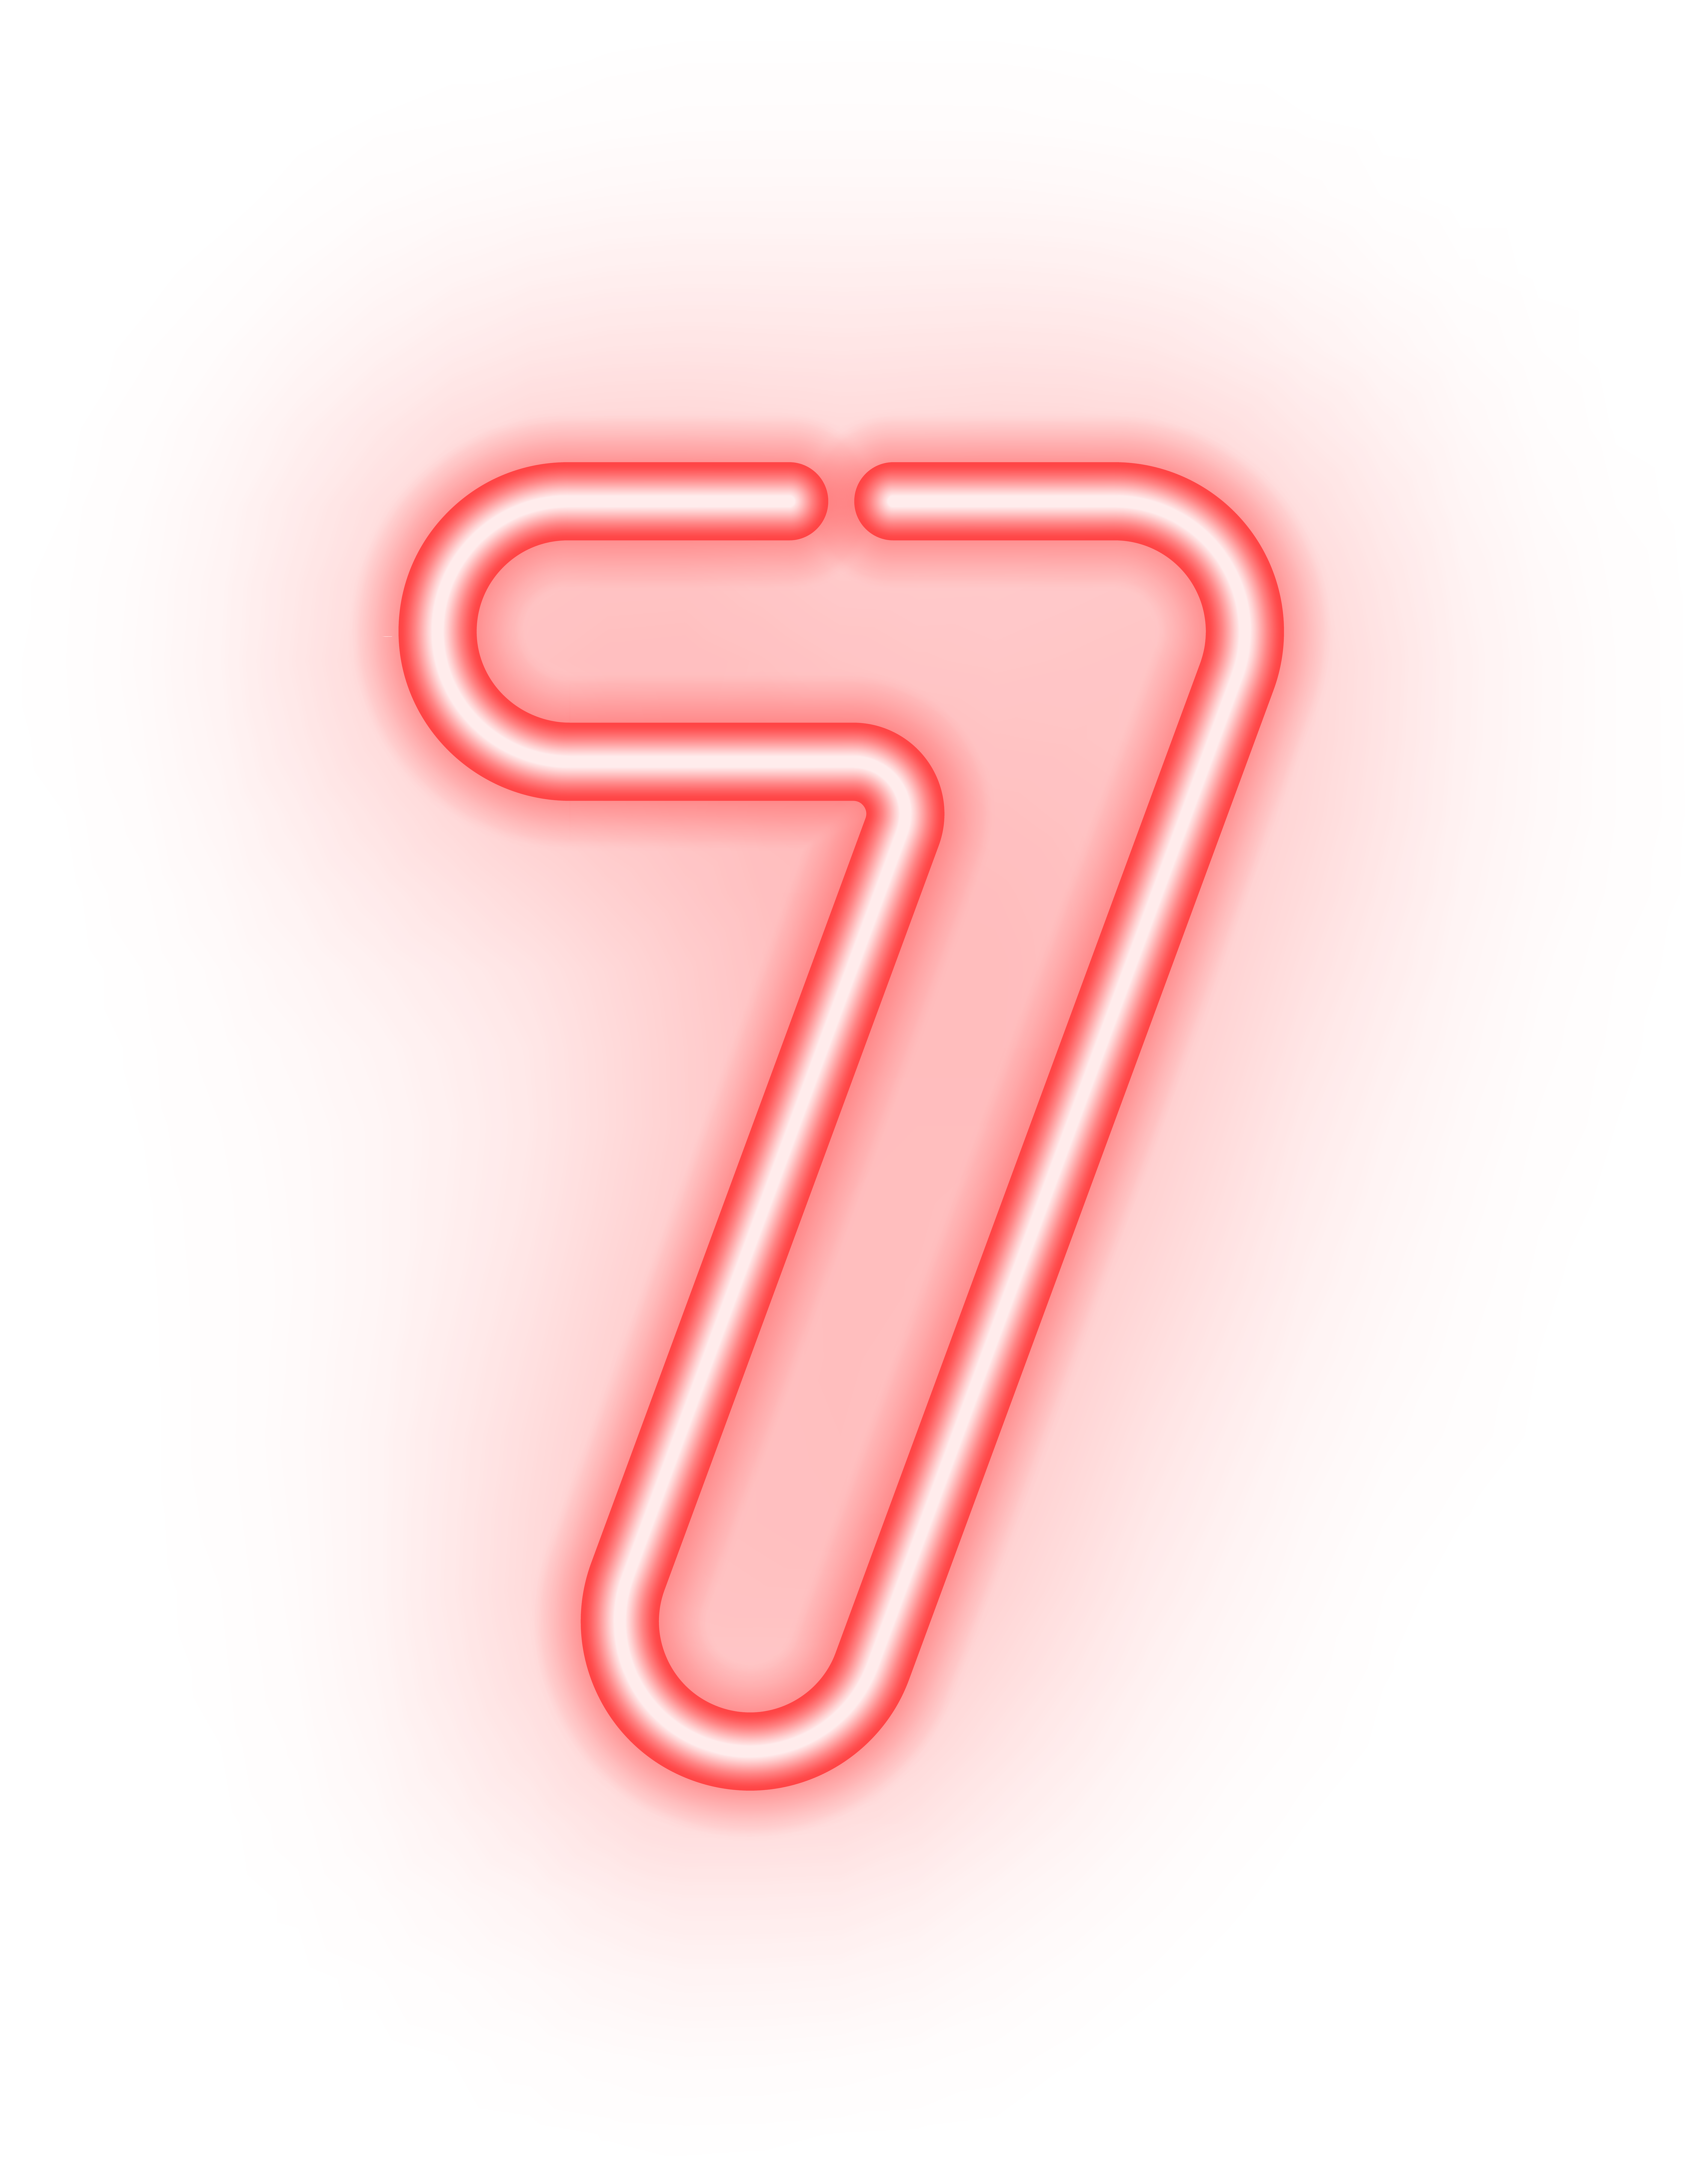 Neon numbers png. Number seven transparent image